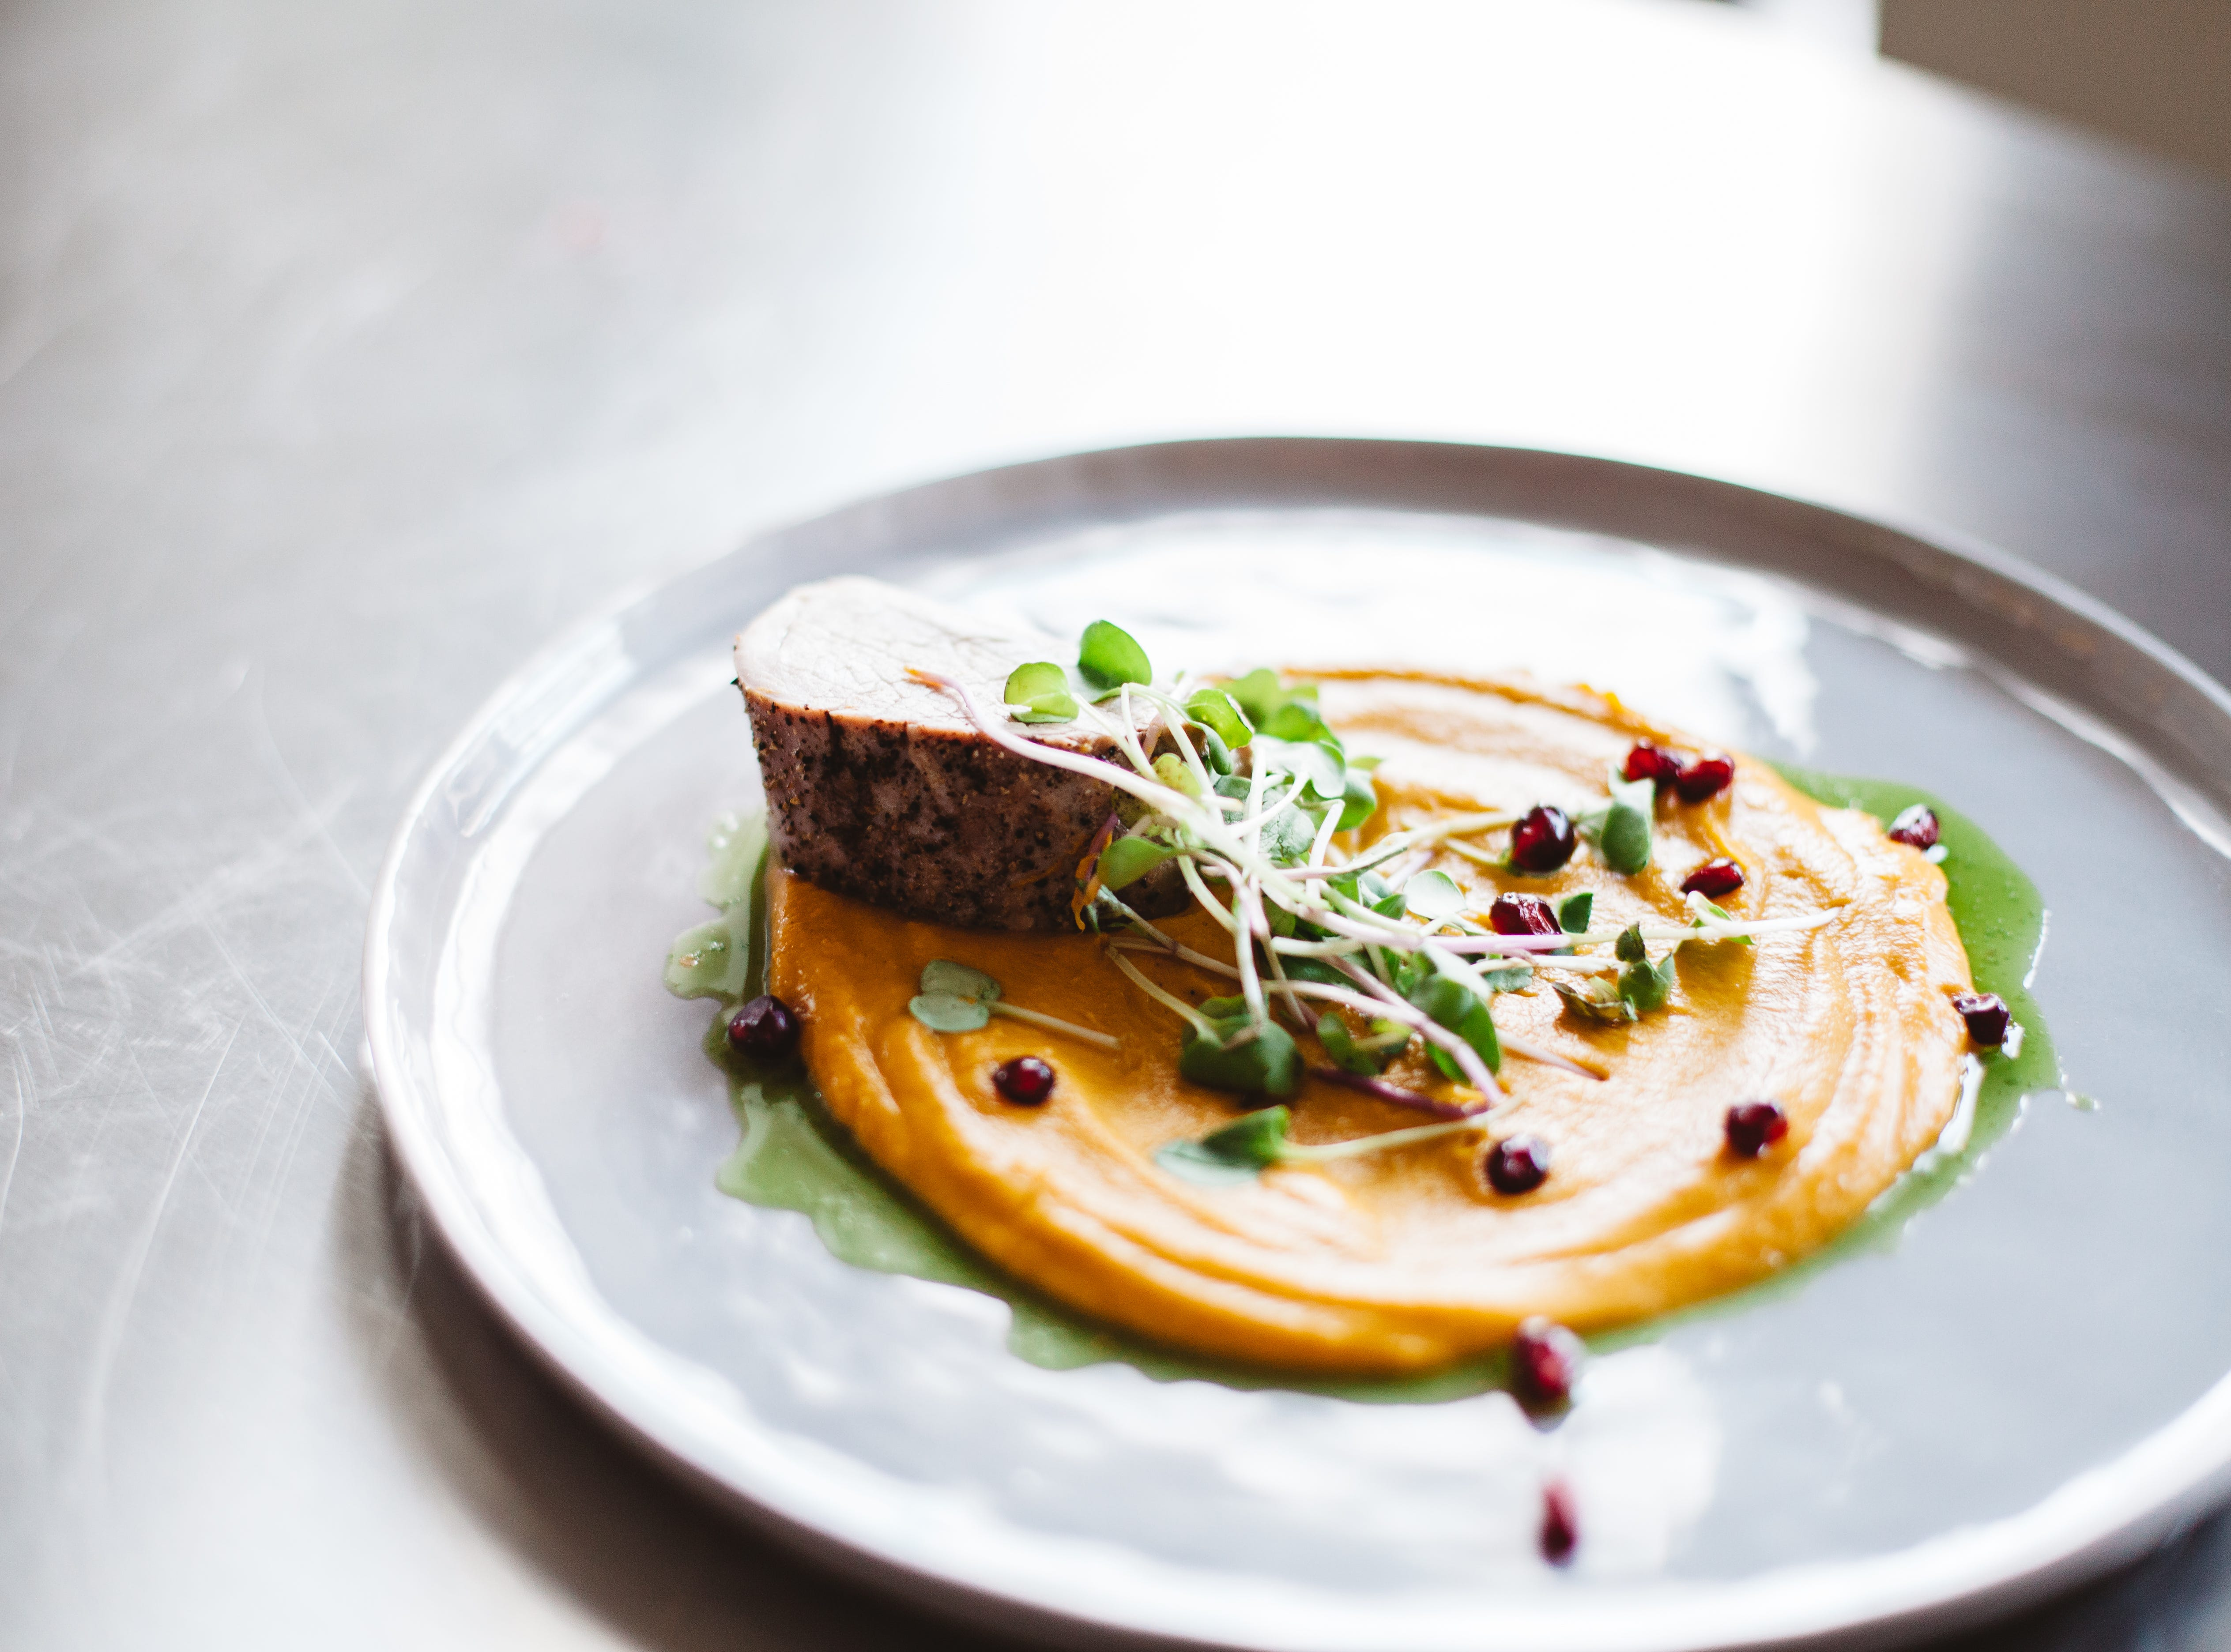 Simpl will focus on a small range of unfussy, yet subtly elevated bar food made with locally sourced ingredients.